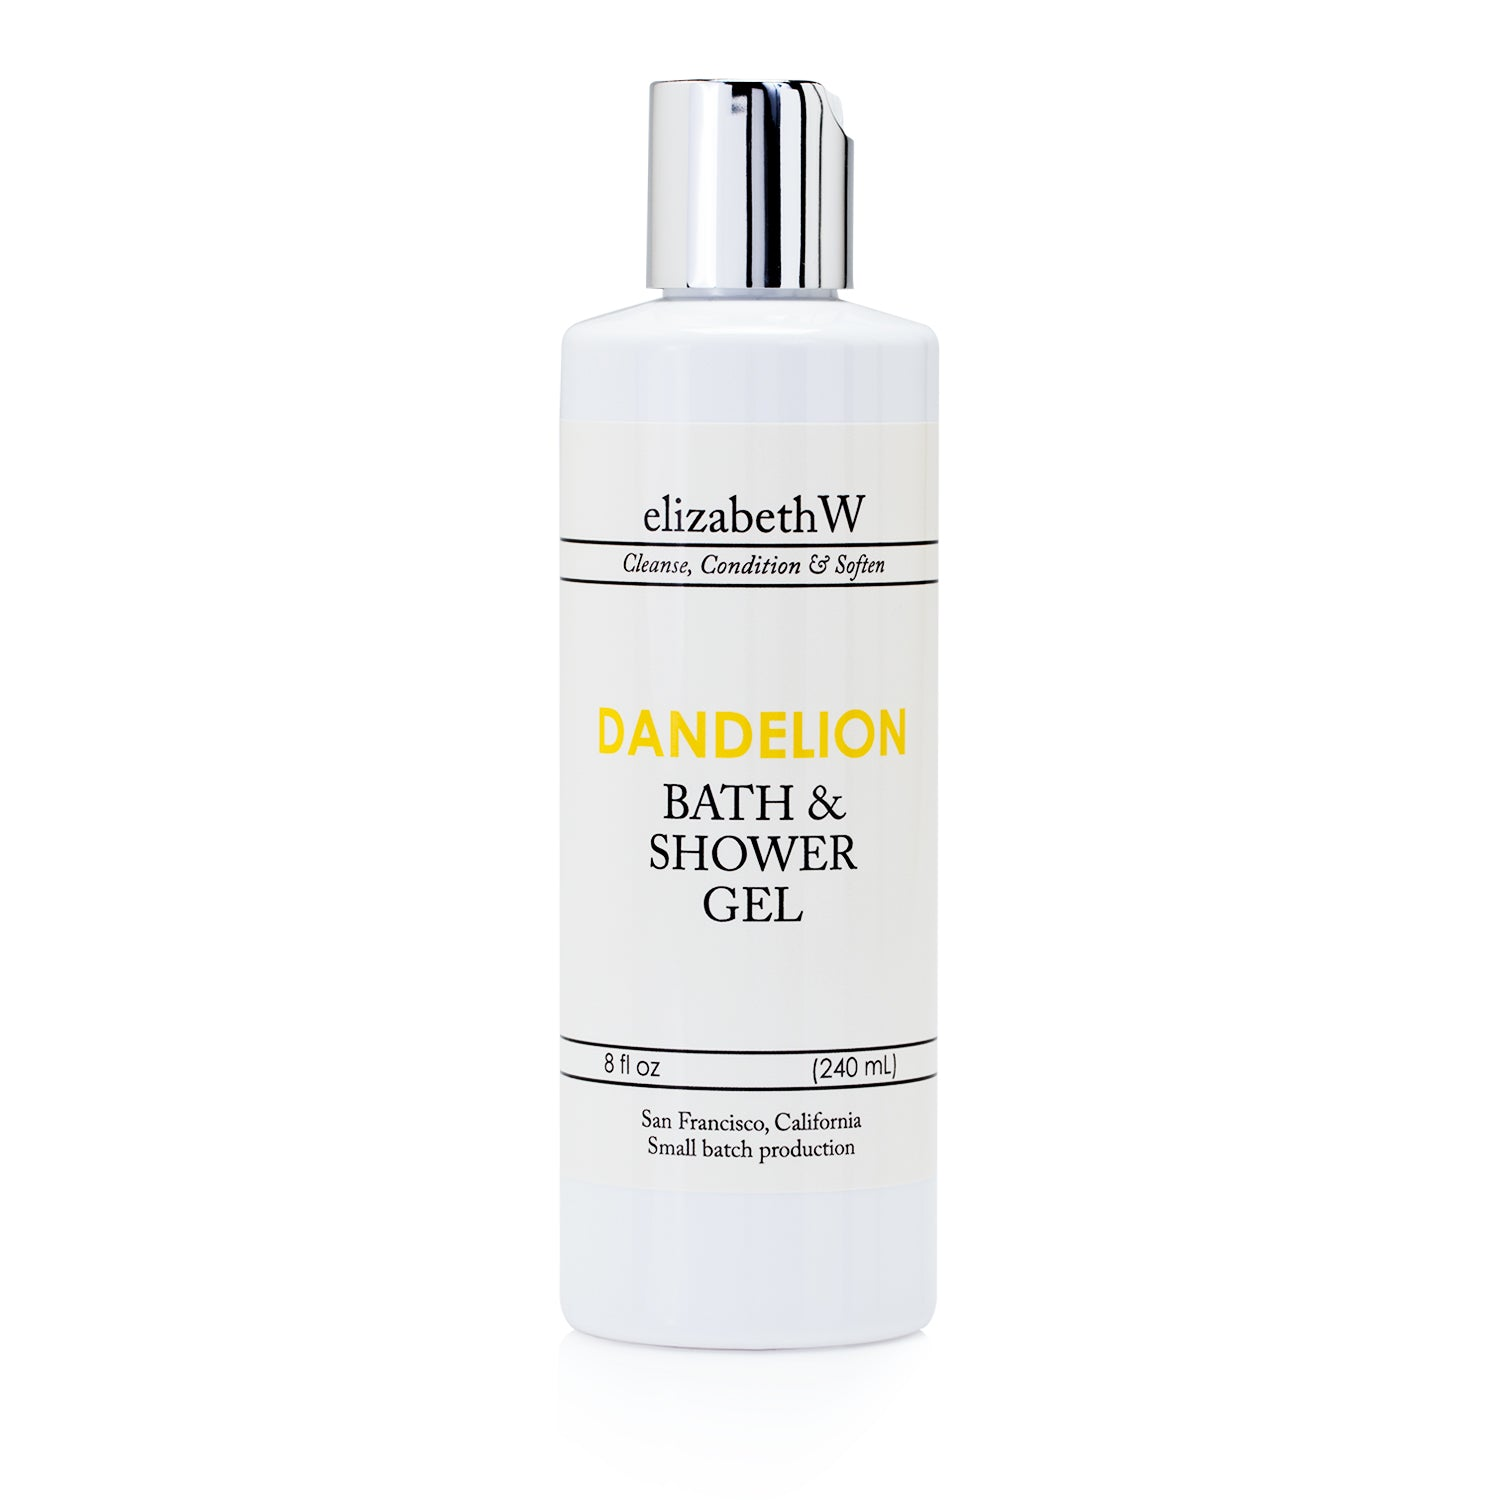 Dandelion Bath & Shower Gel